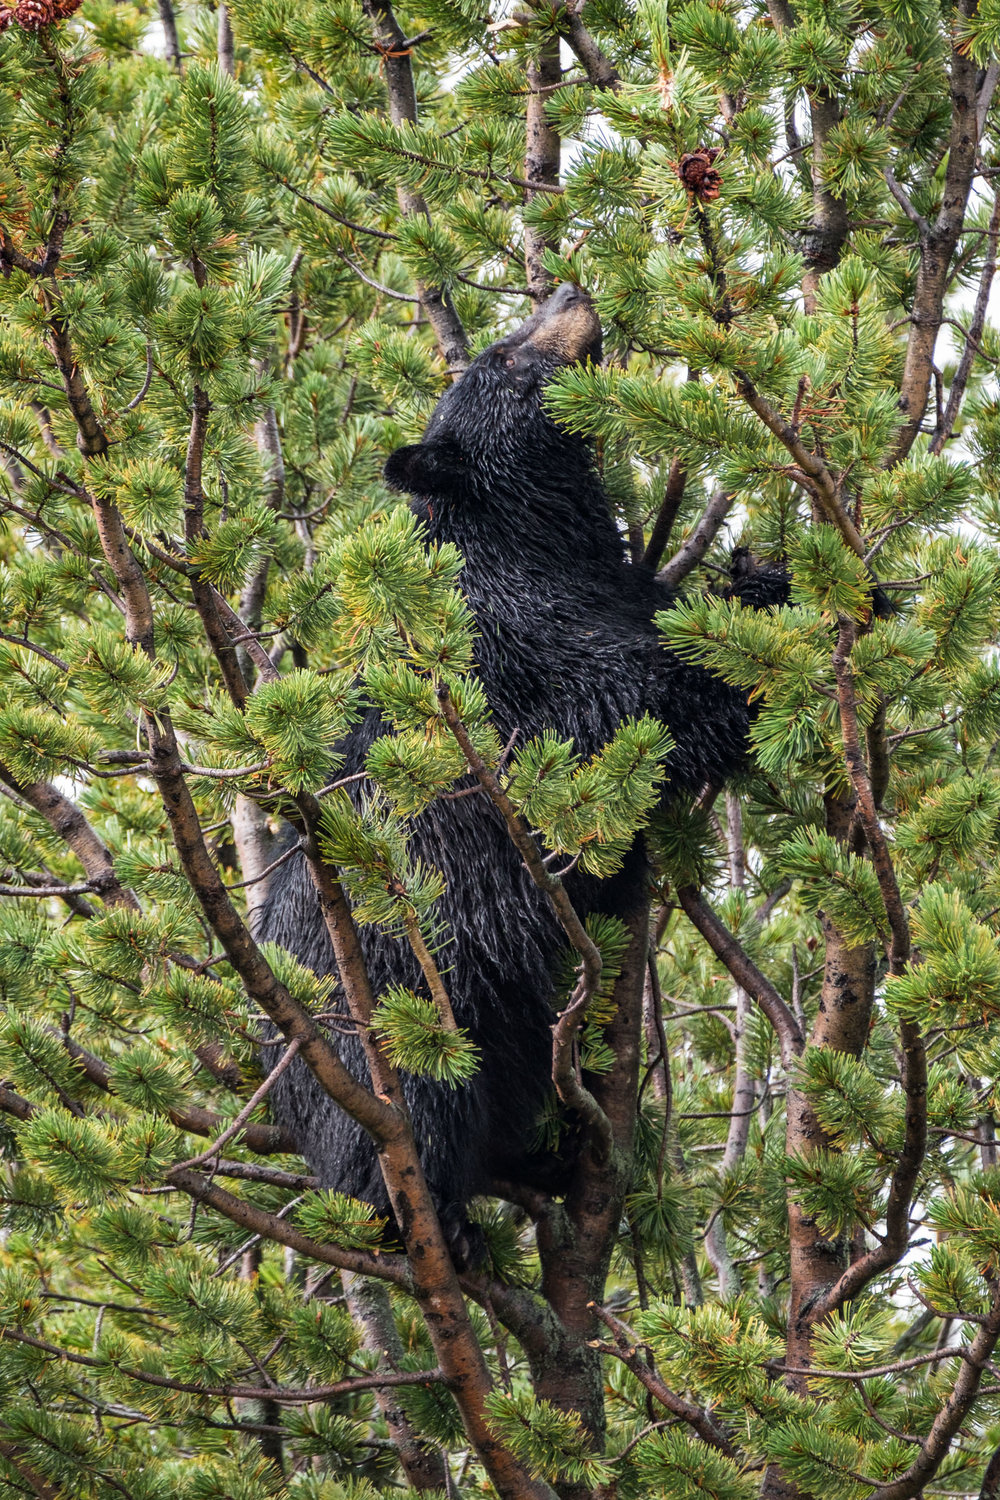 Black bears climb pine trees in search of food to beef up before hibernation.